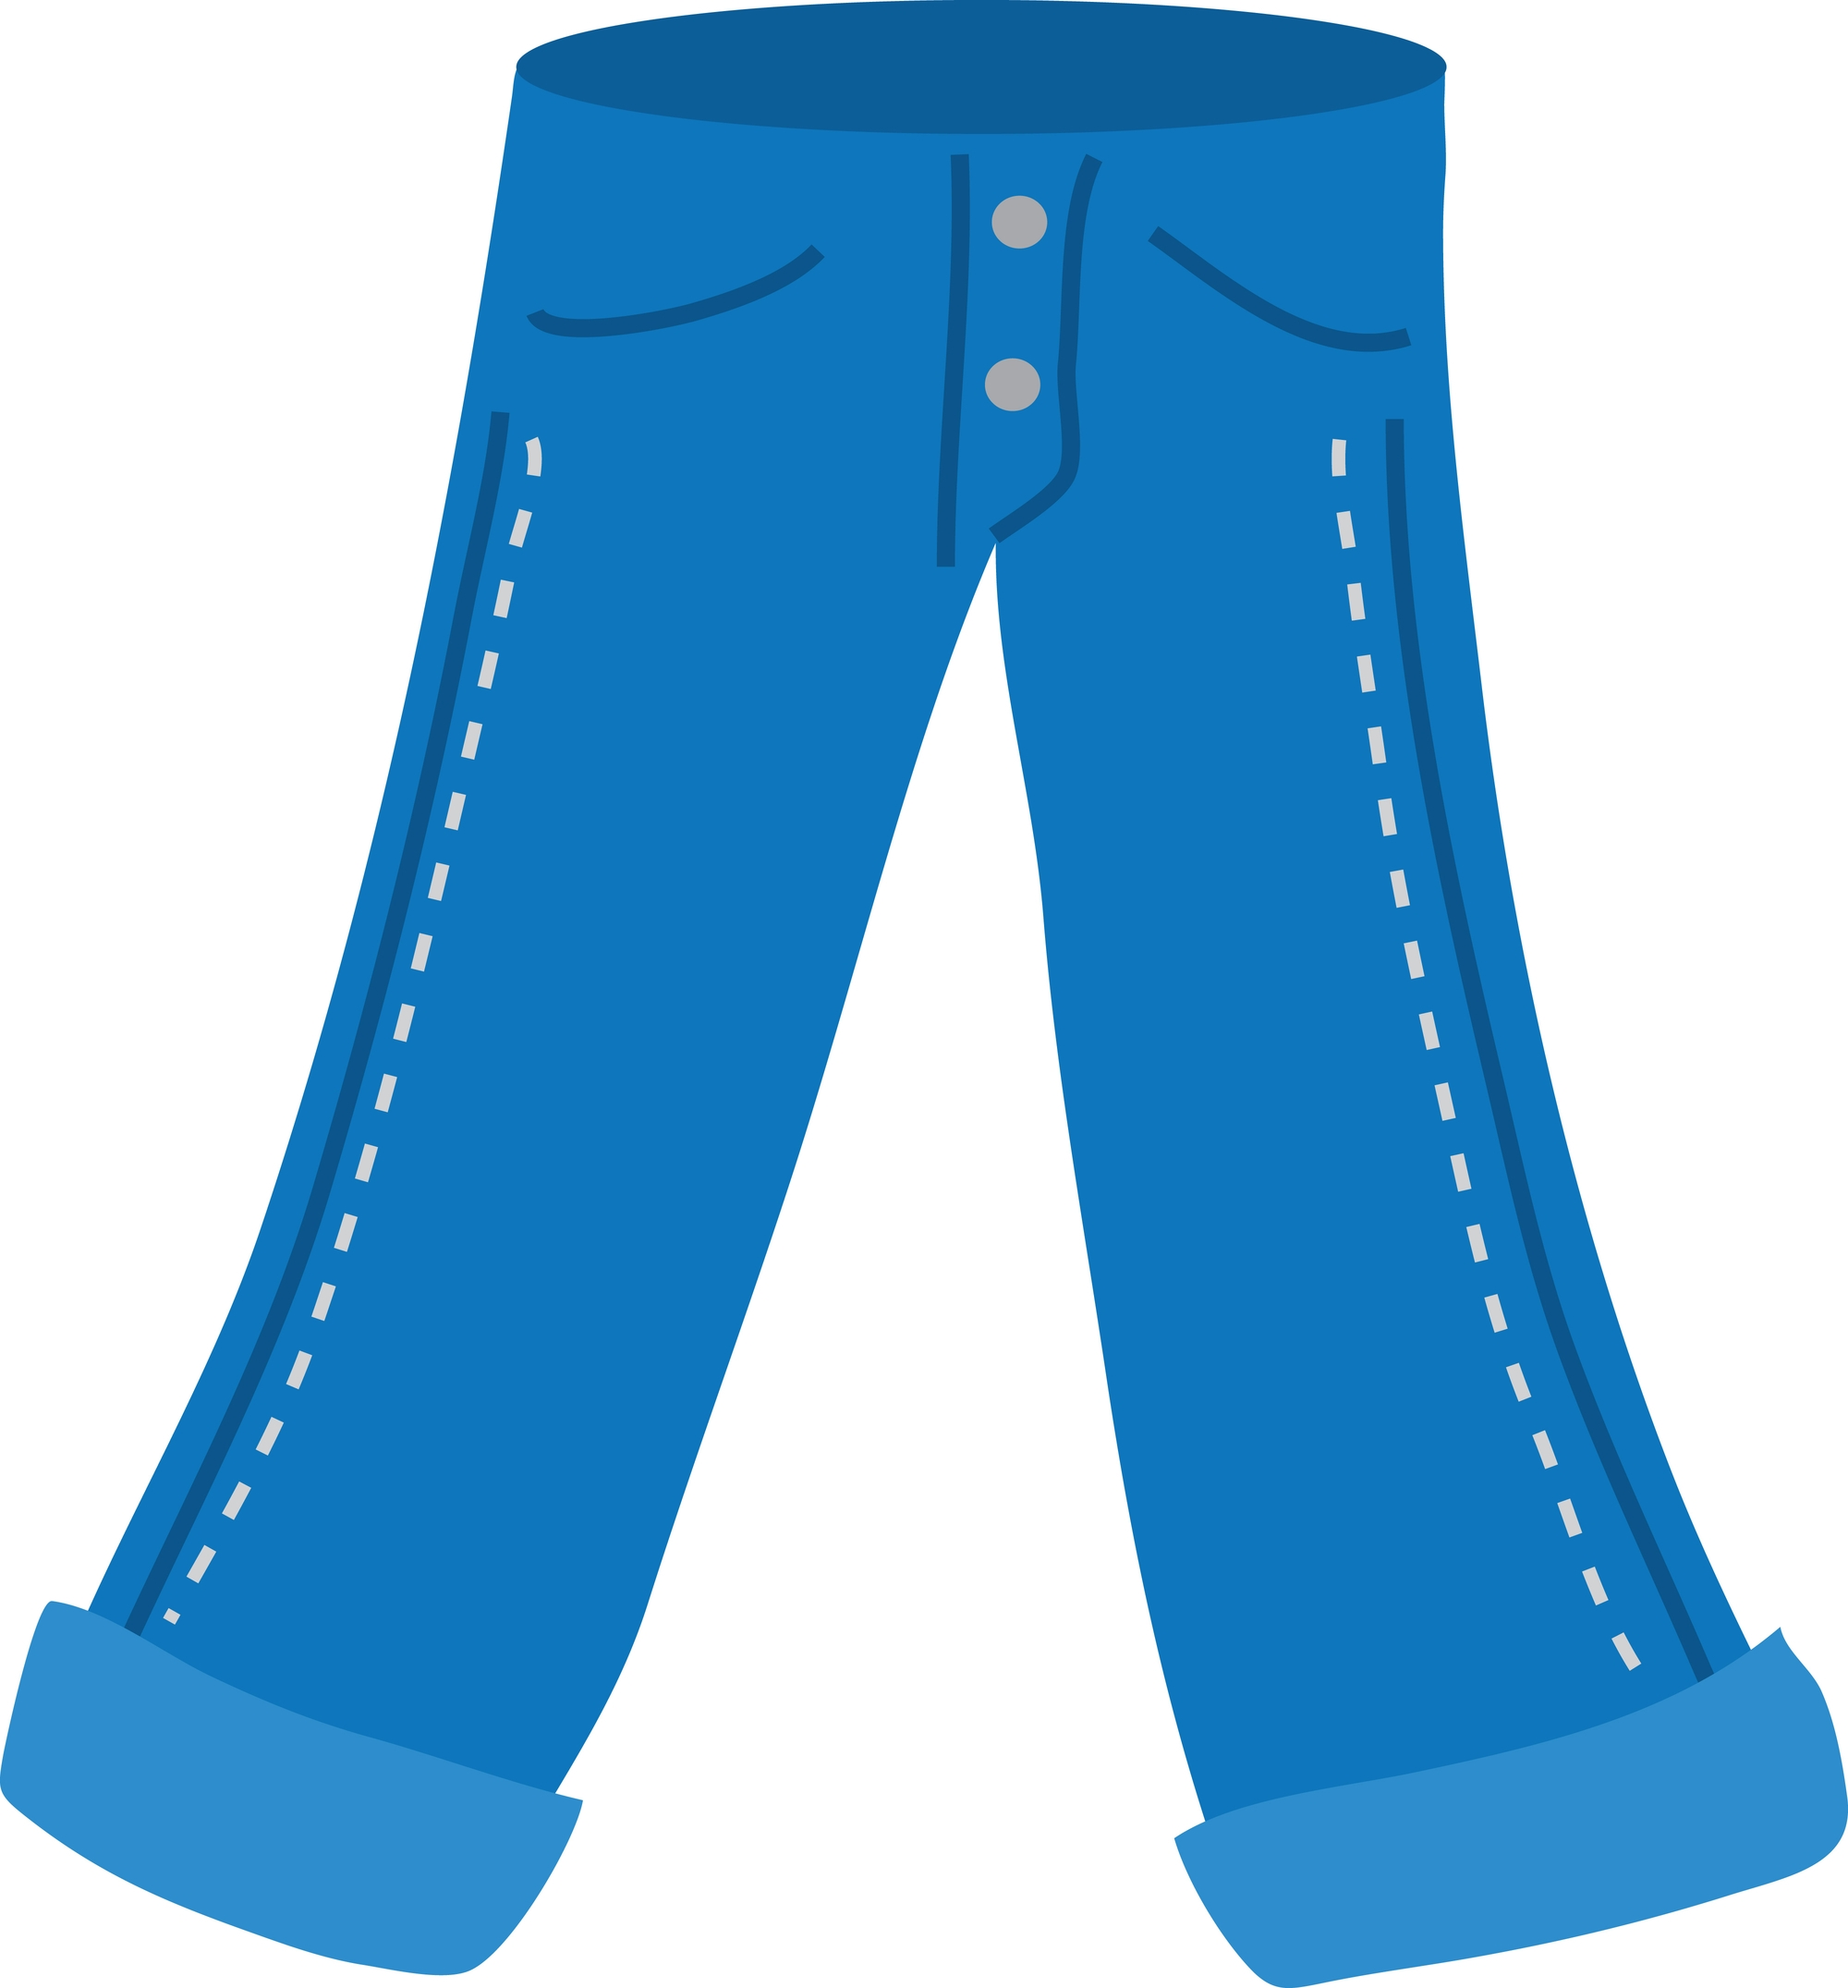 New gallery digital collection. Pants clipart